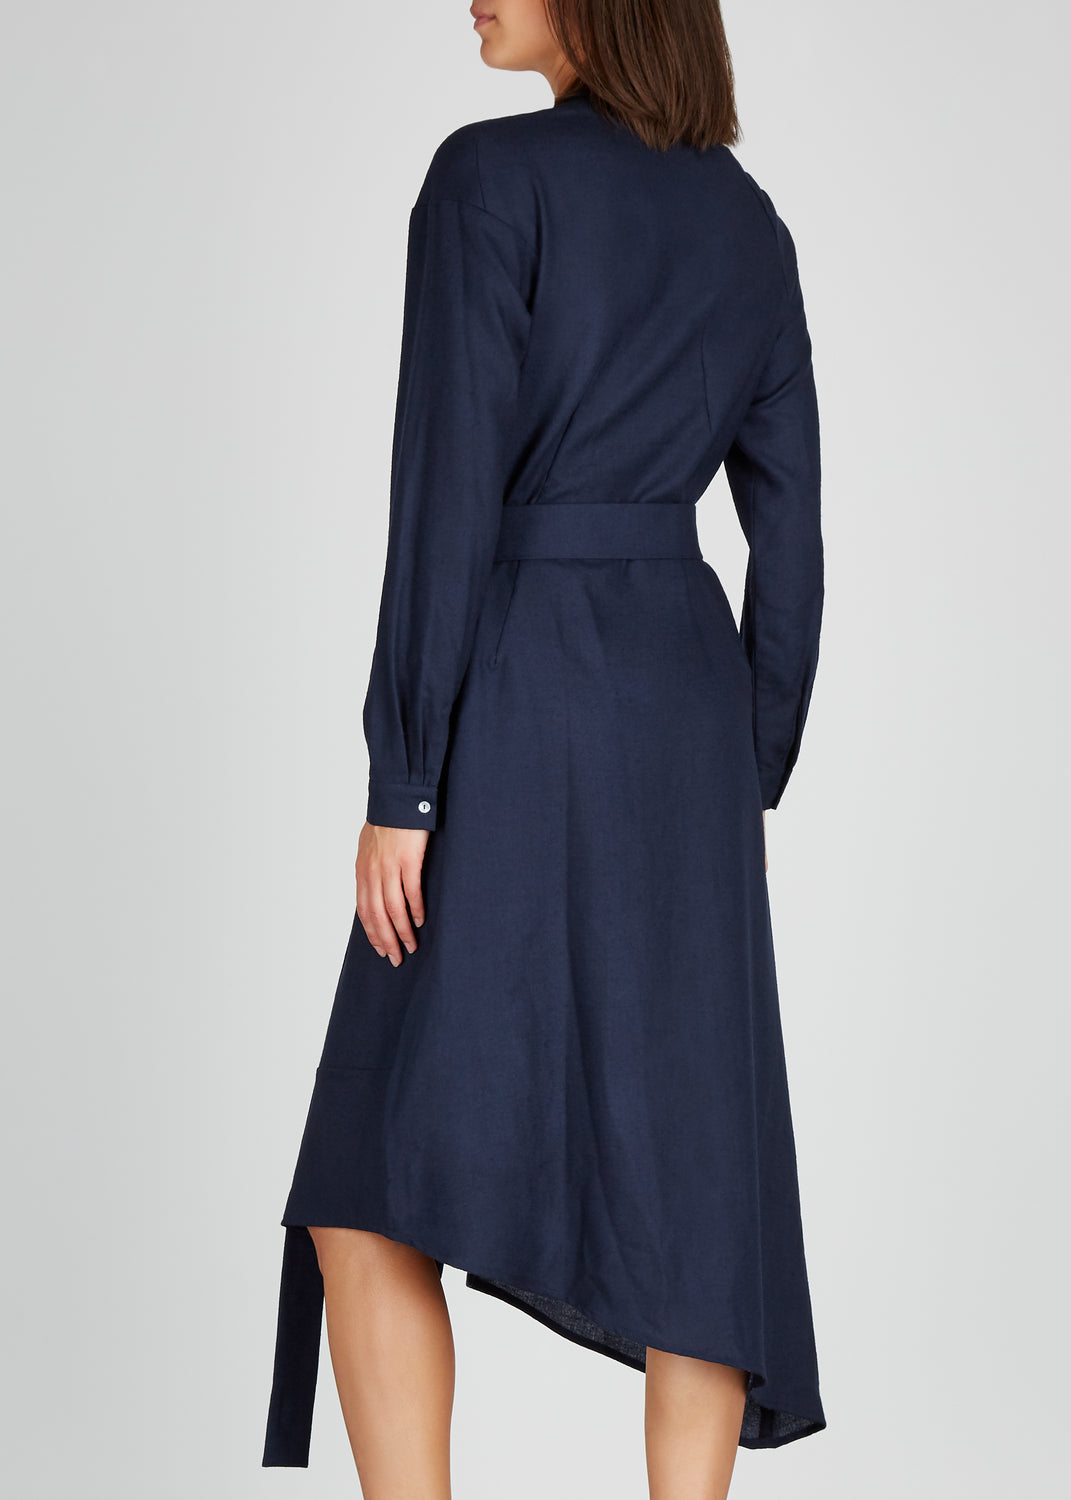 AWAYTOMARS X Woolmark navy wool shirt dress